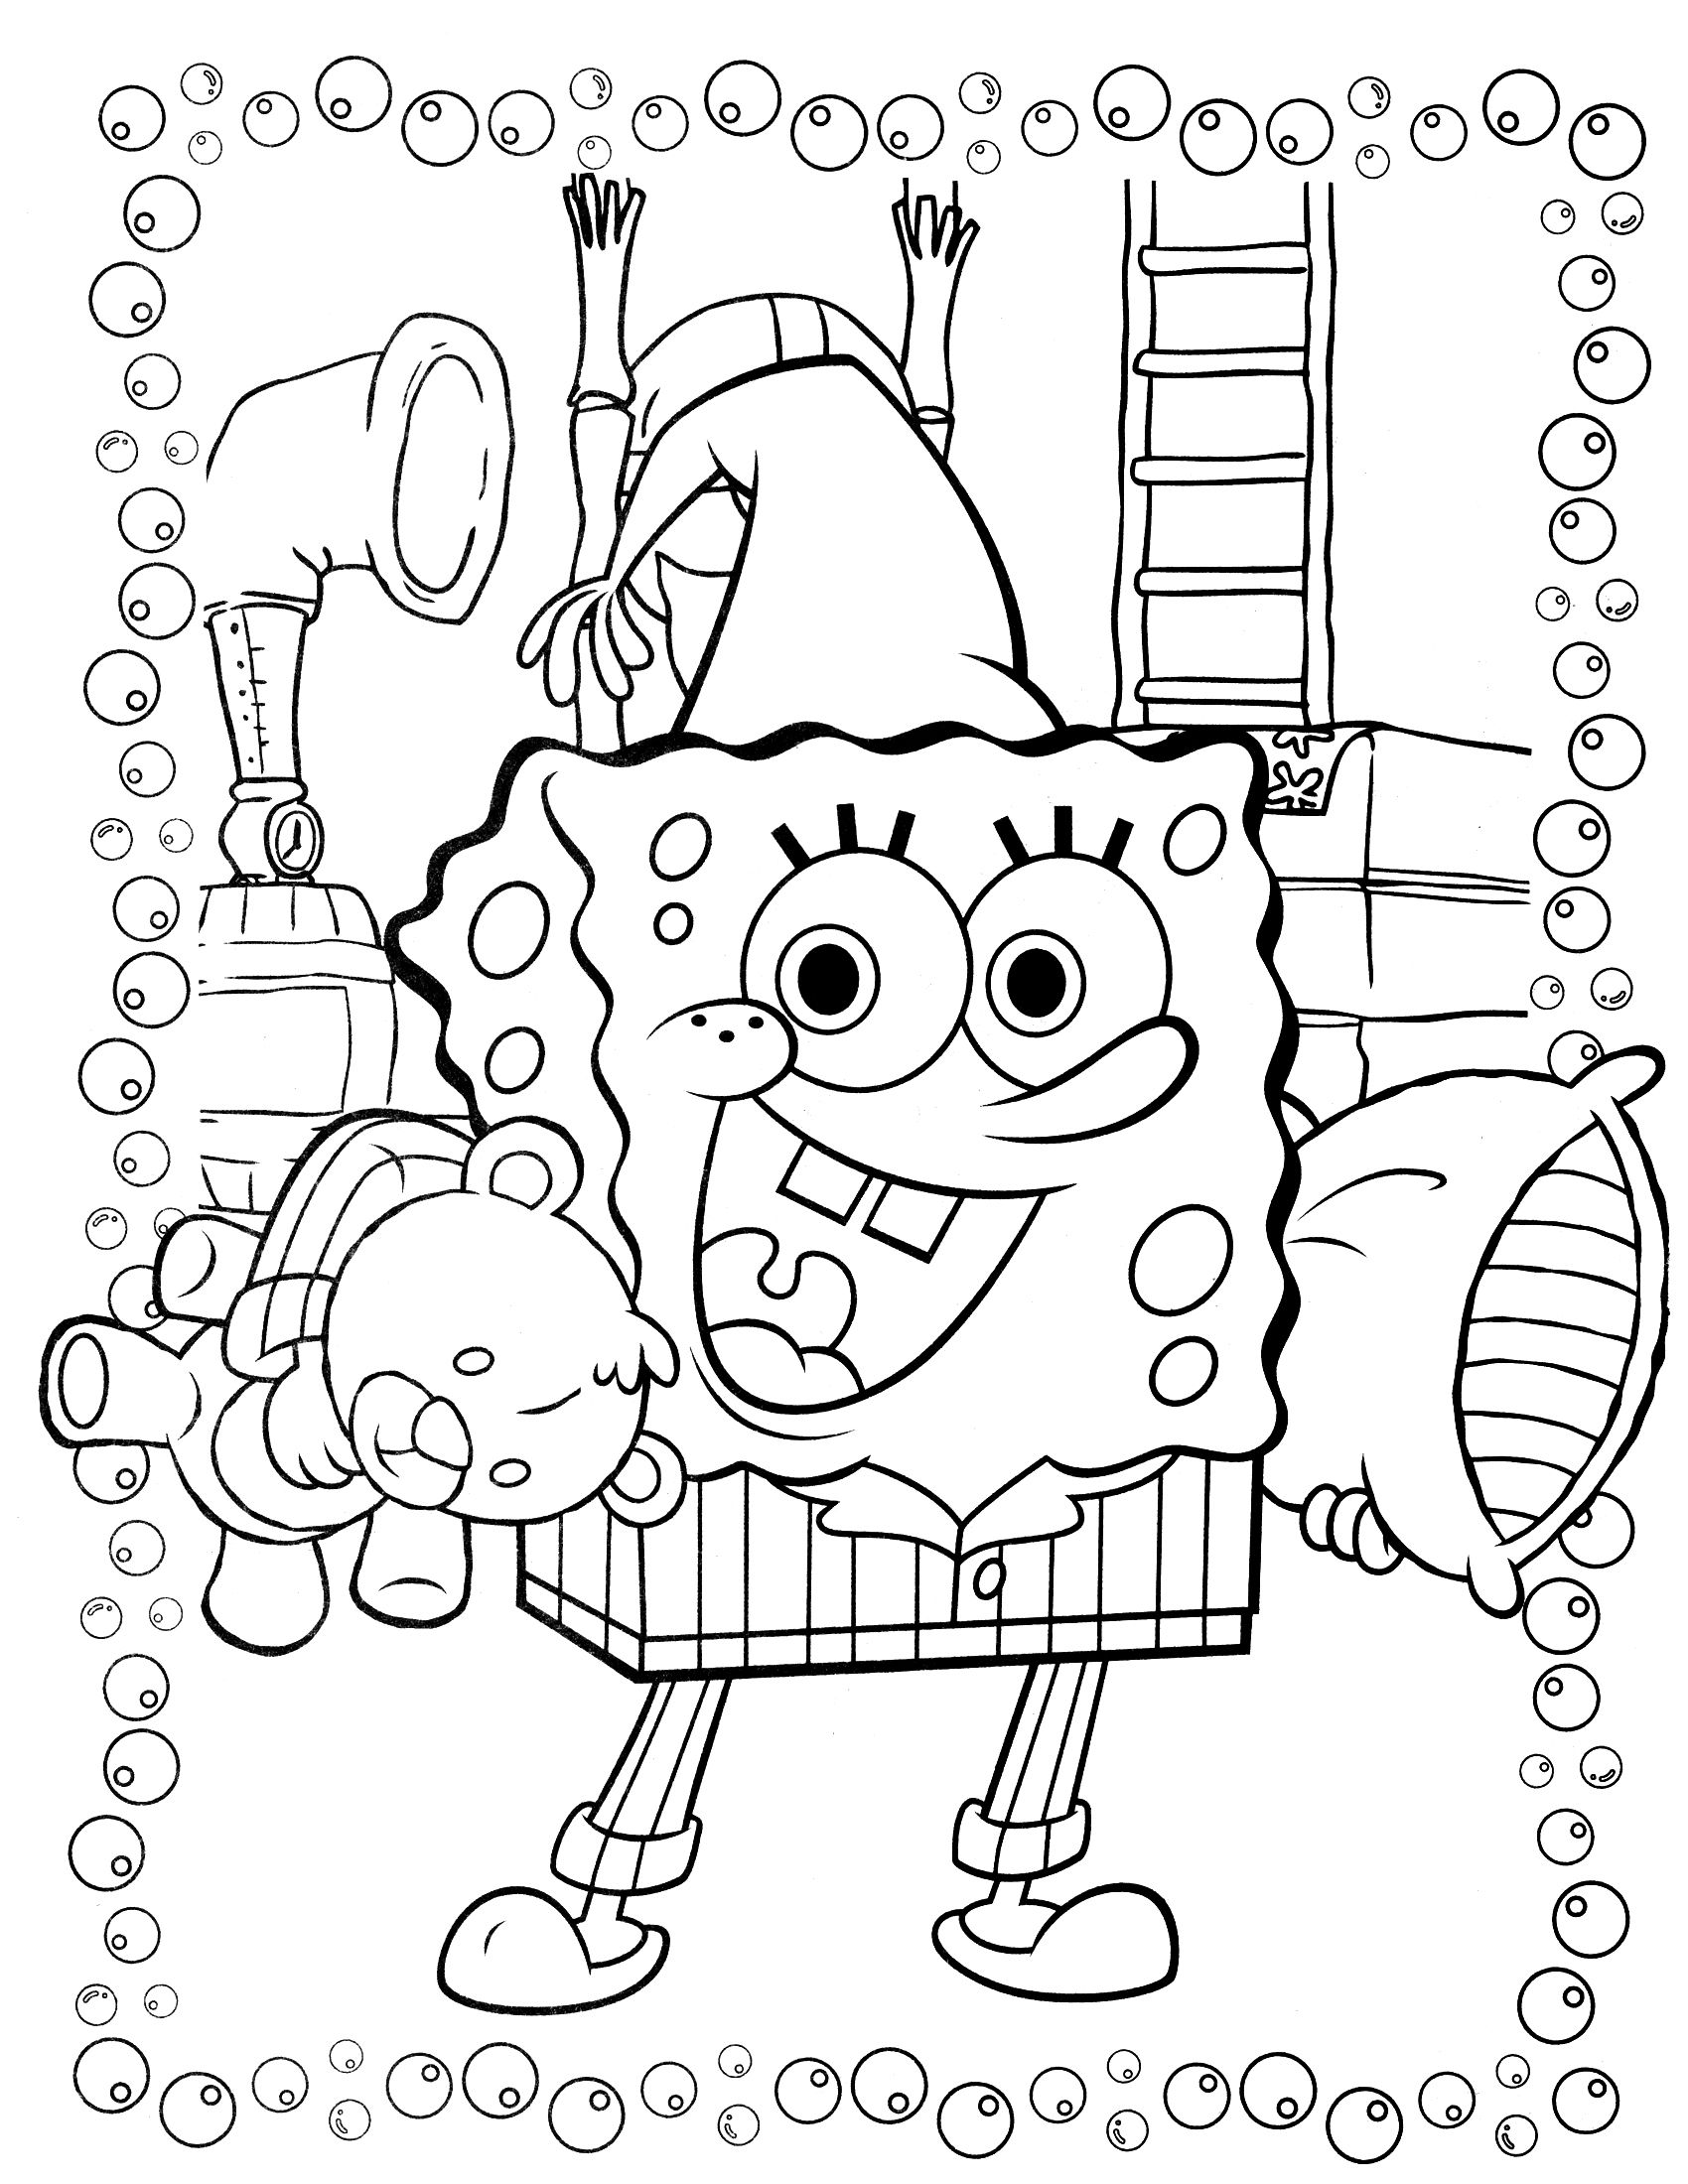 Spongebob Coloring Page 89 With Images Cartoon Coloring